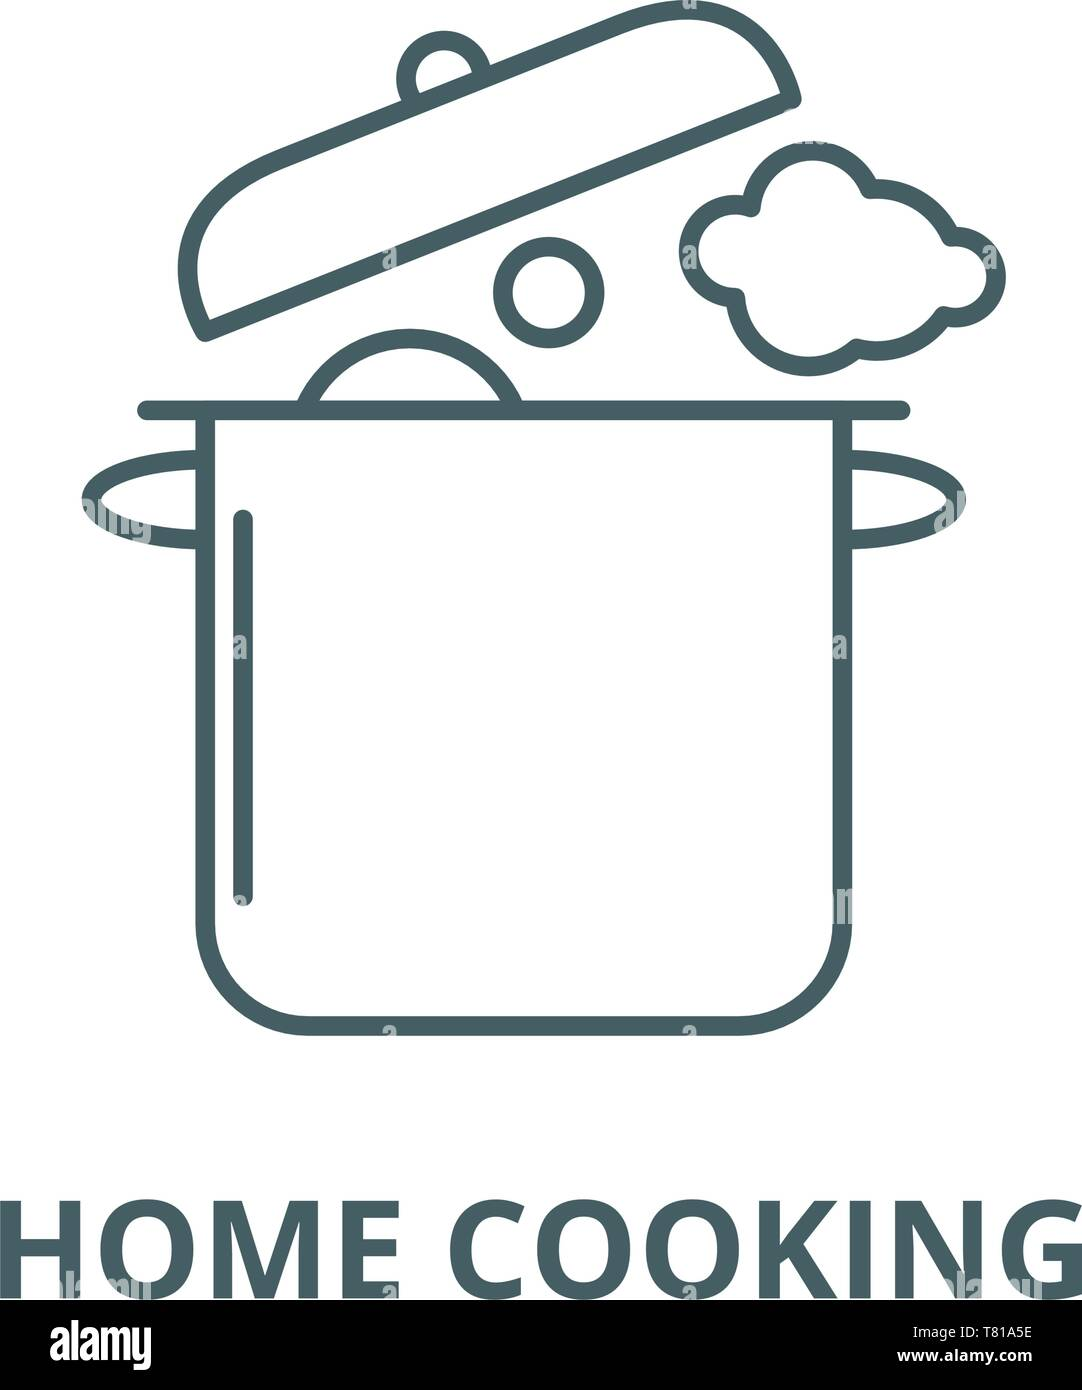 Home cooking vector line icon, linear concept, outline sign, symbol - Stock Image